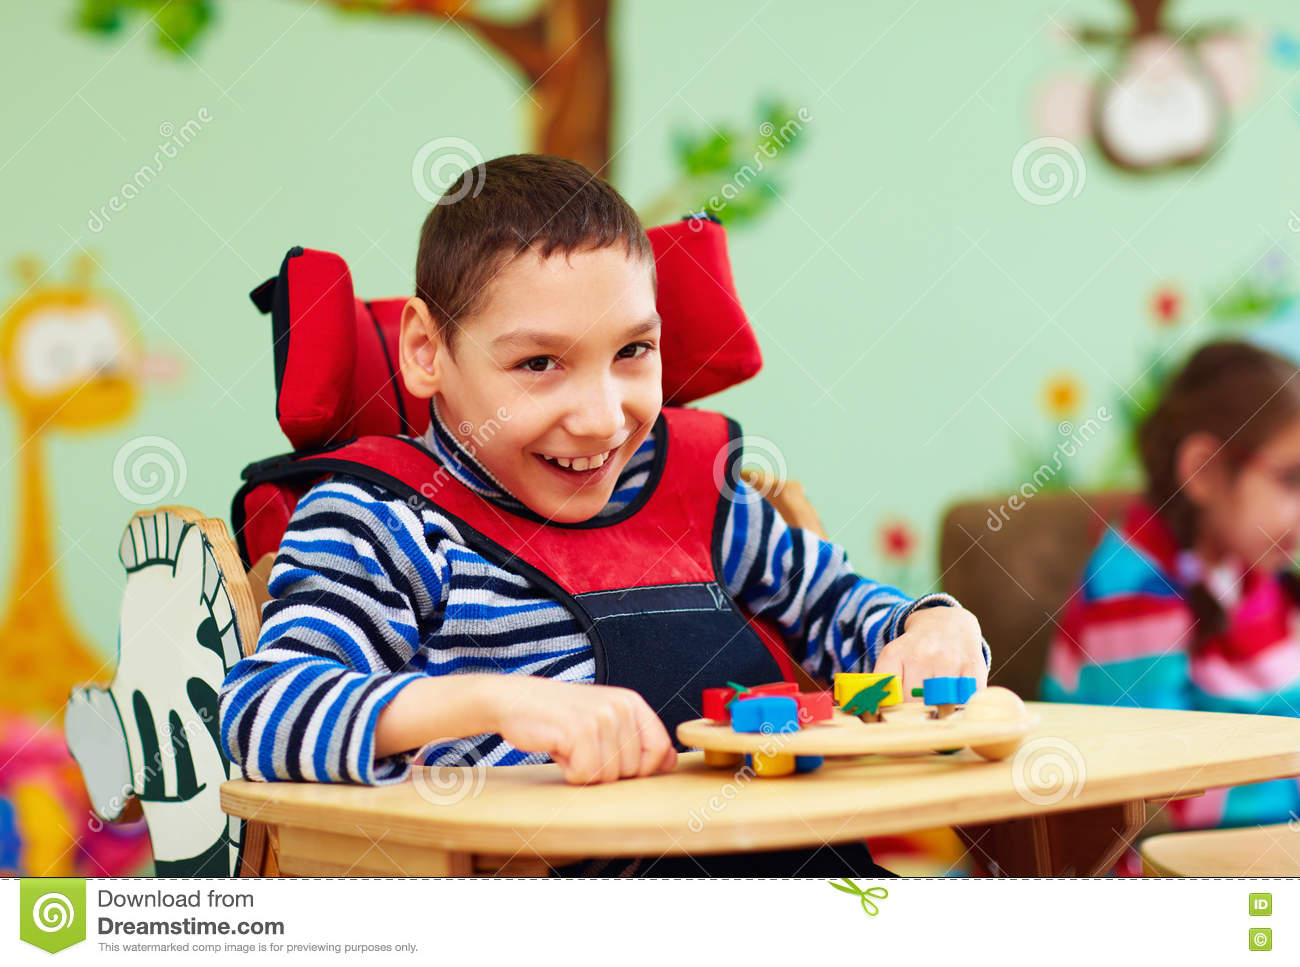 Portrait of cheerful boy with disability at rehabilitation center for kids with special needs